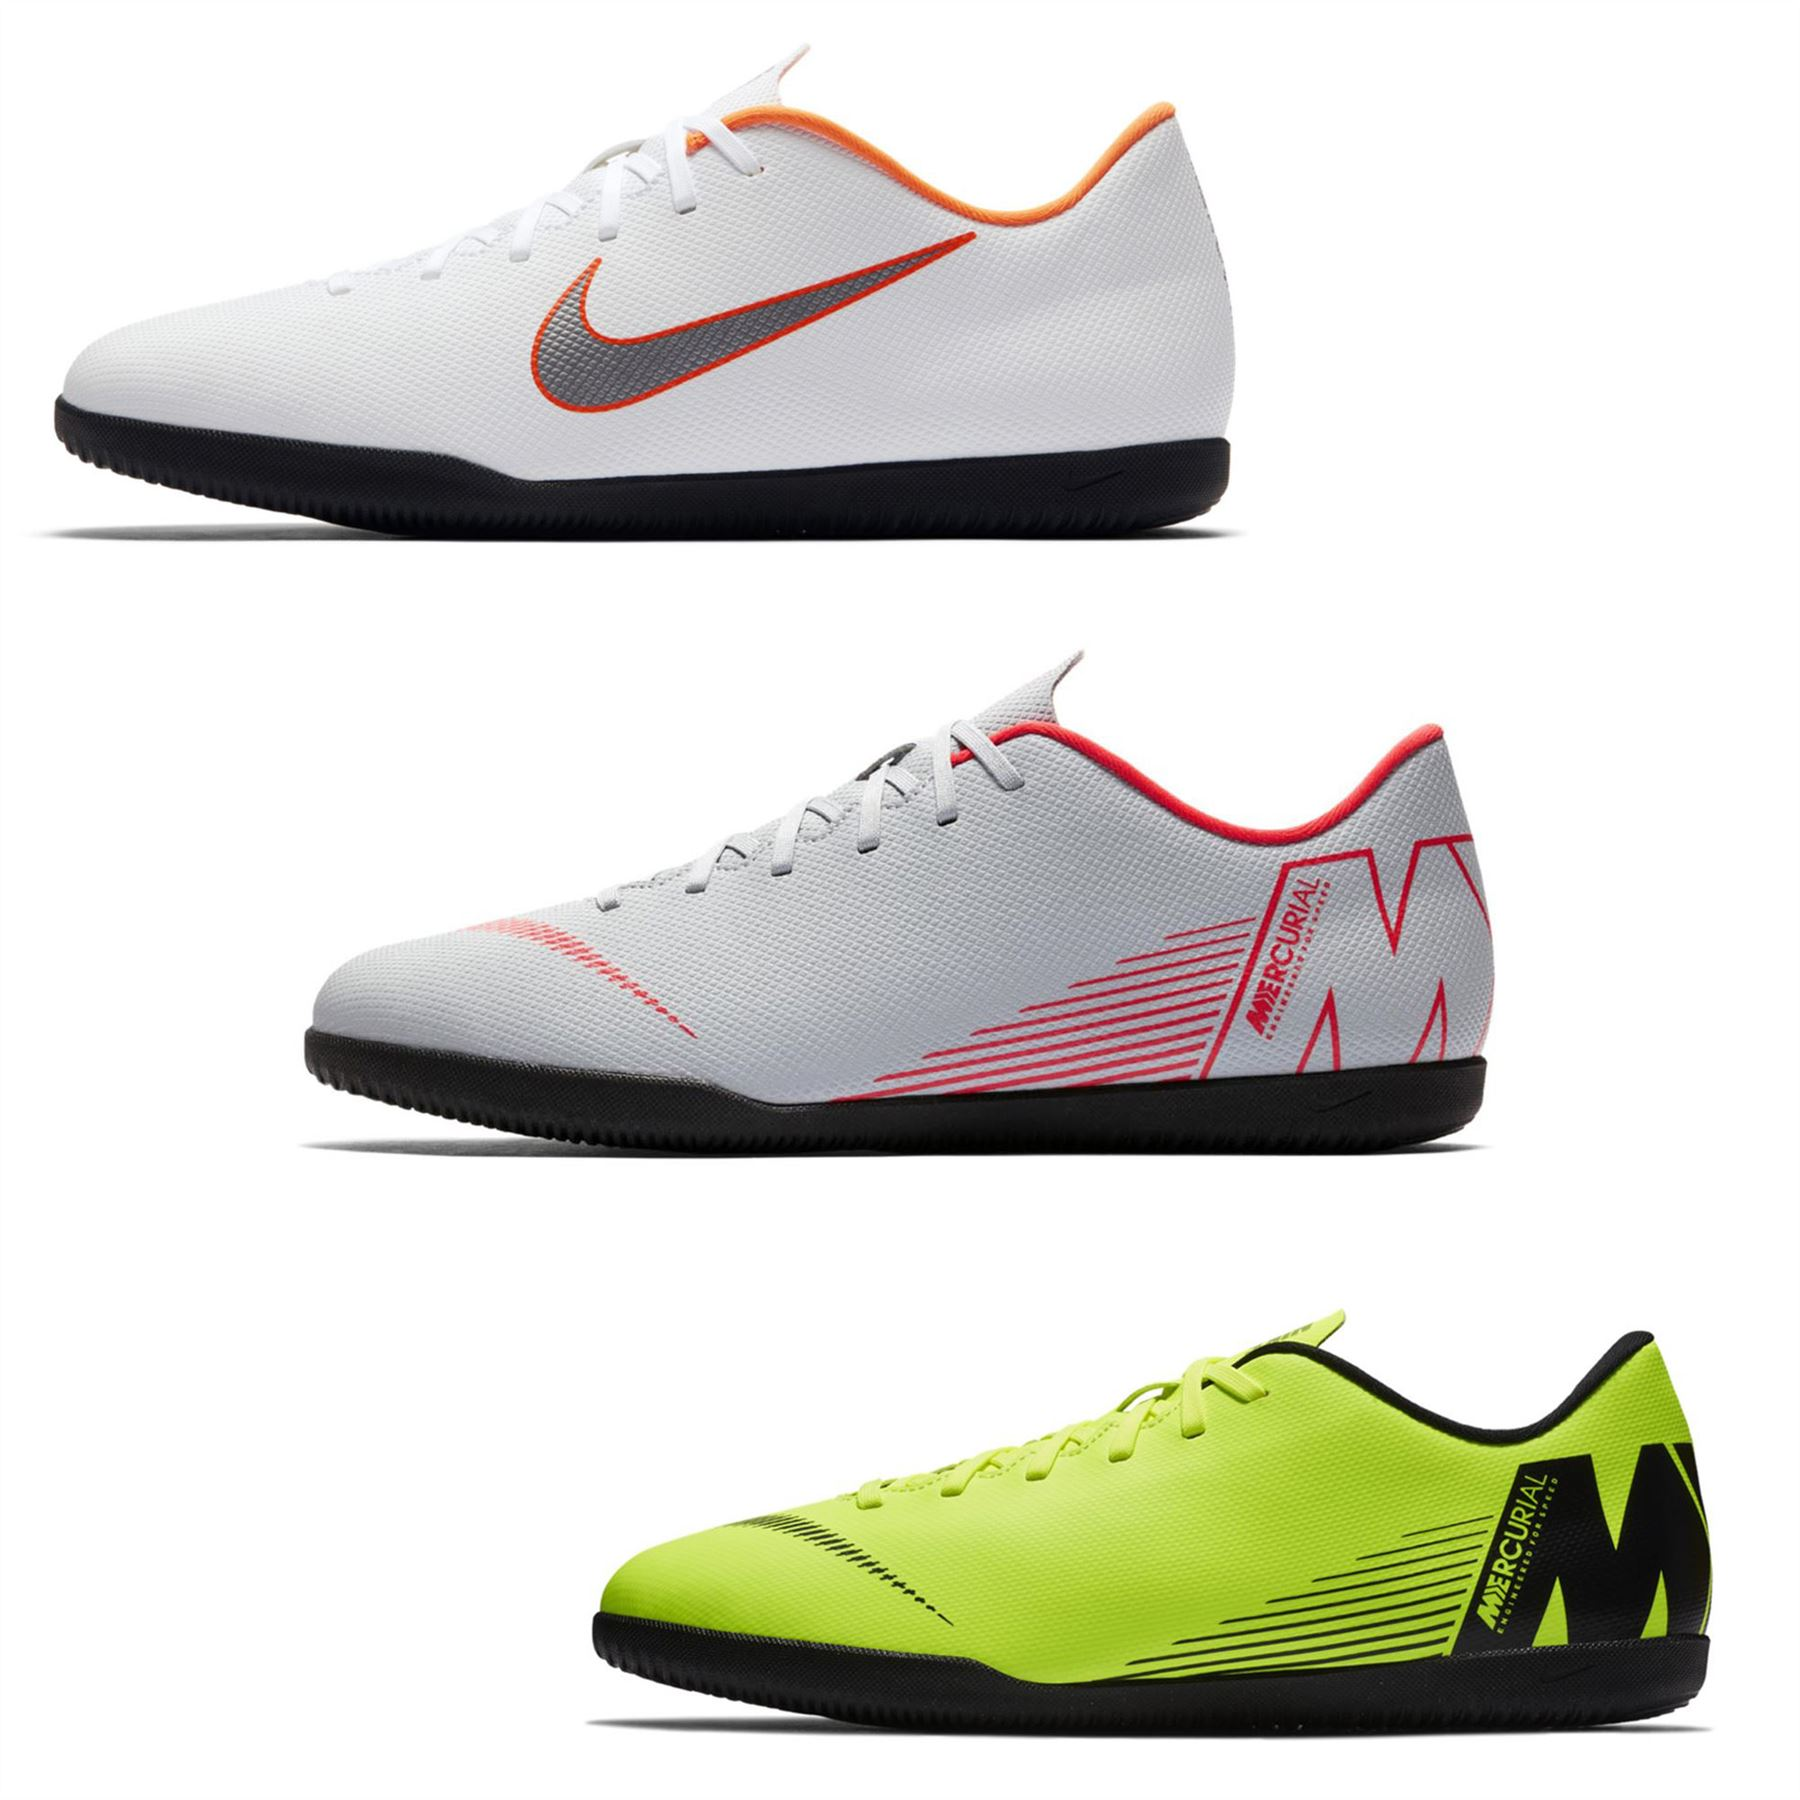 bfd02d66e9c Details about Nike Mercurial Vapor Club Indoor Football Trainers Mens  Soccer Futsal Shoes